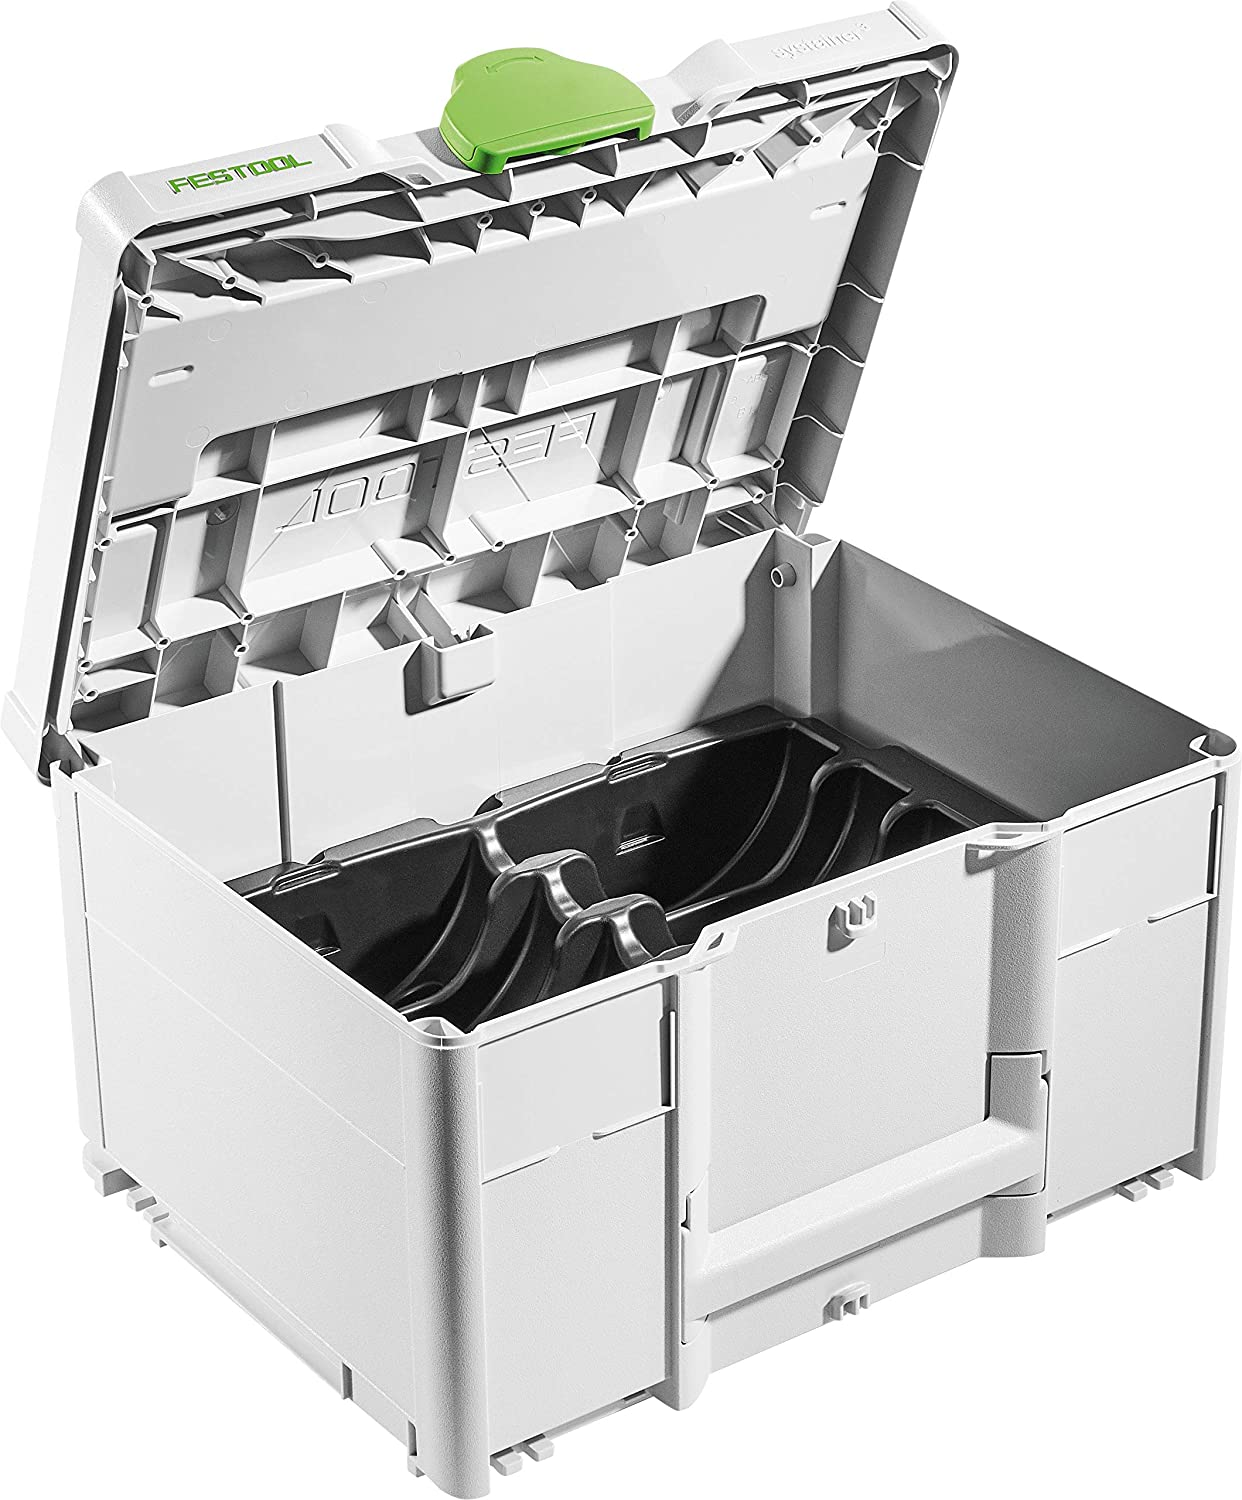 Festool 576785 Systainer/³ SYS-STF D150